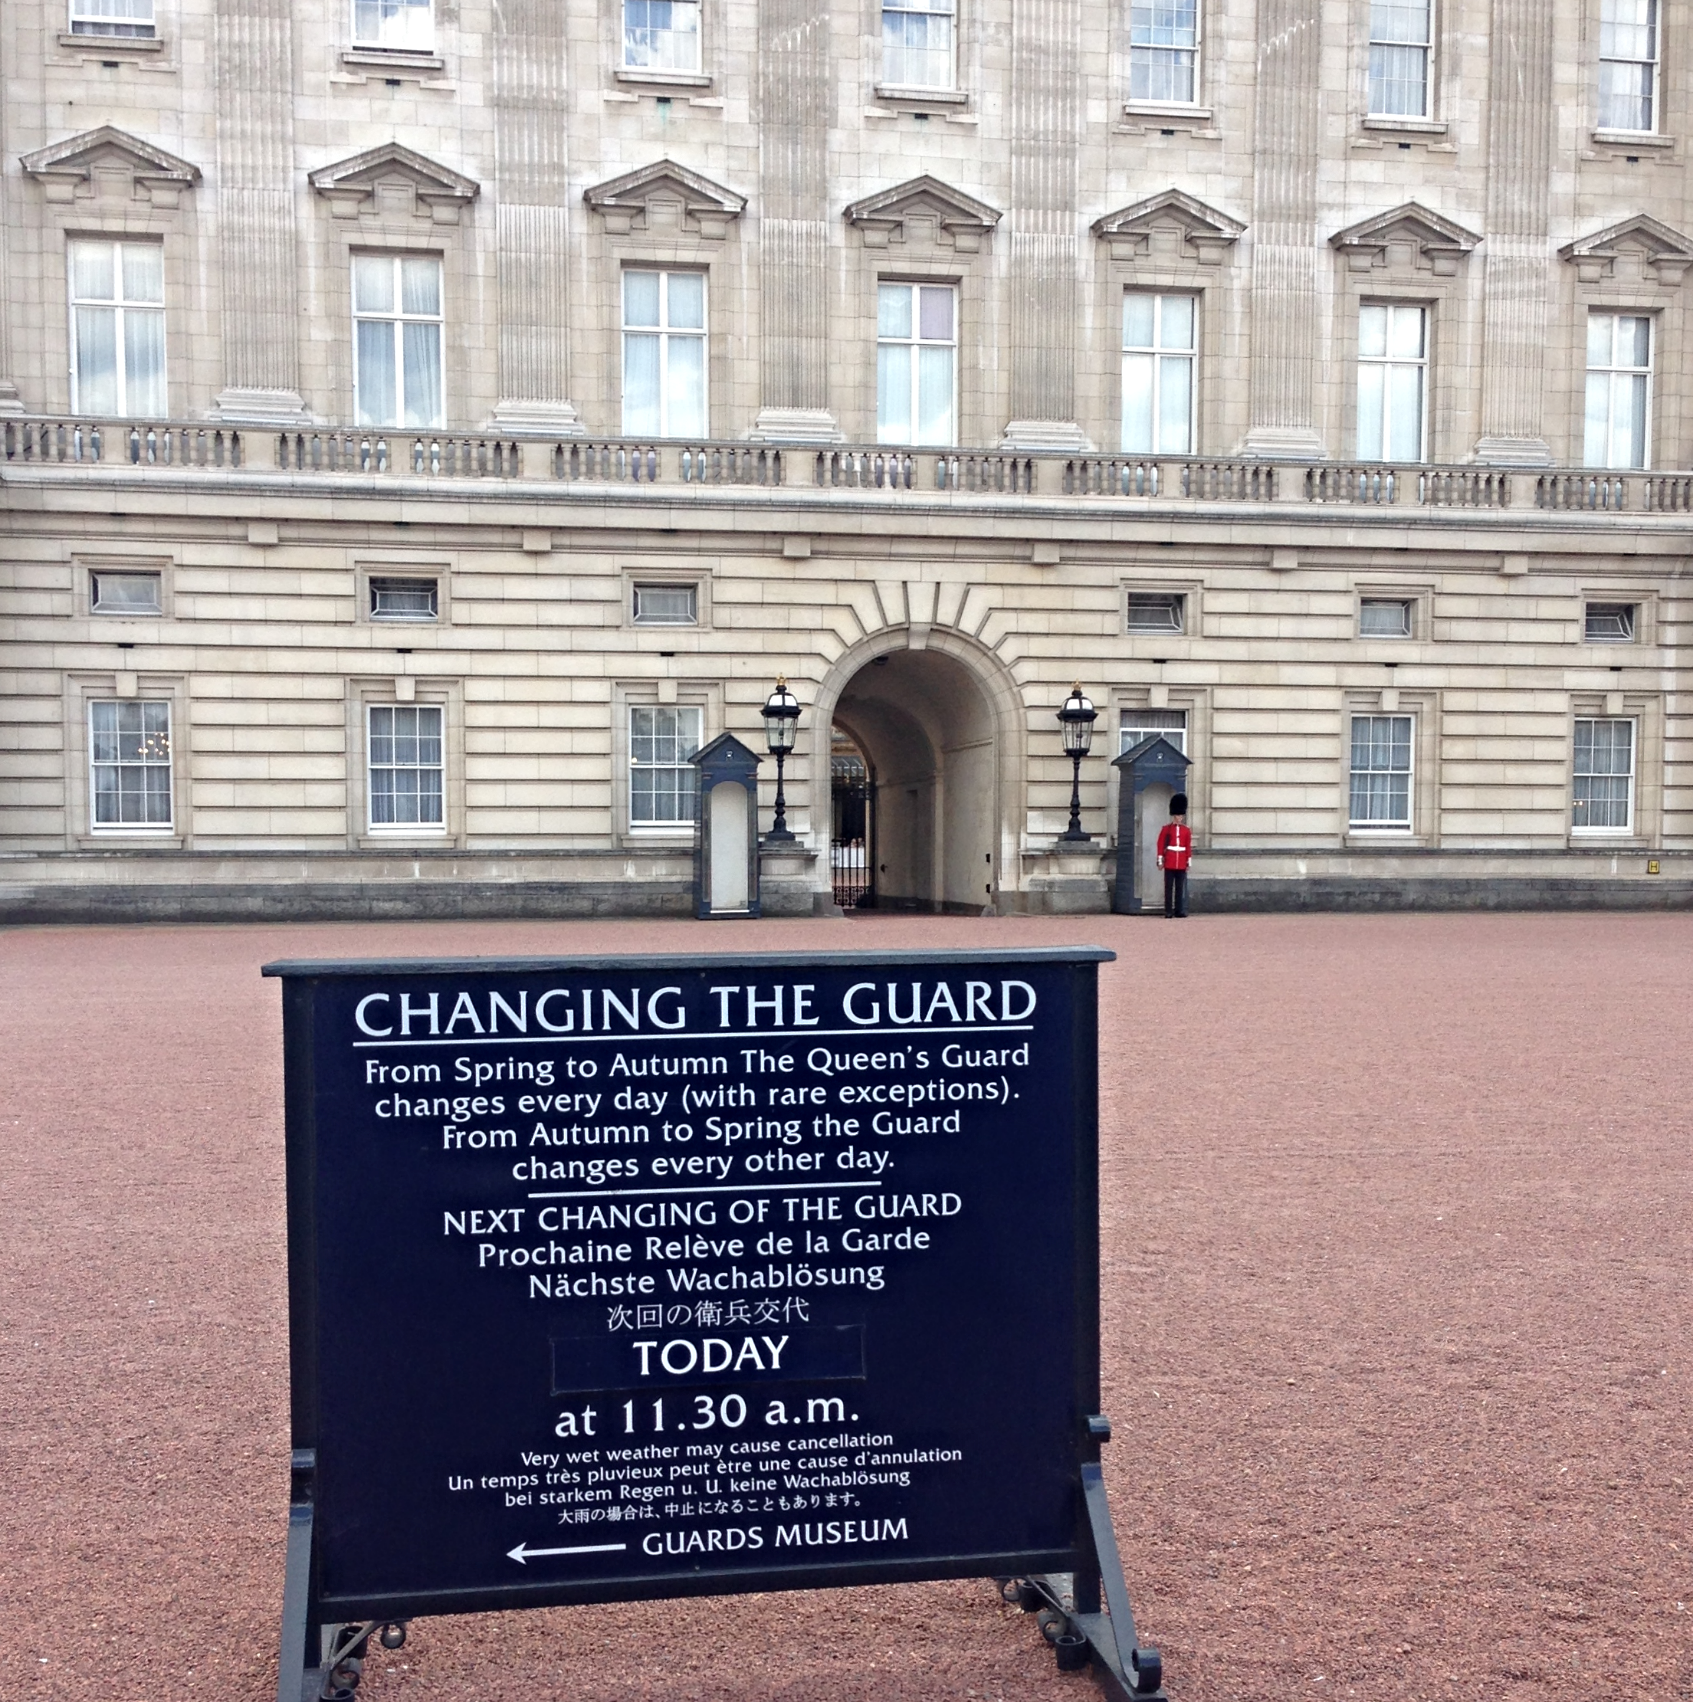 changing-the-guard-times-london